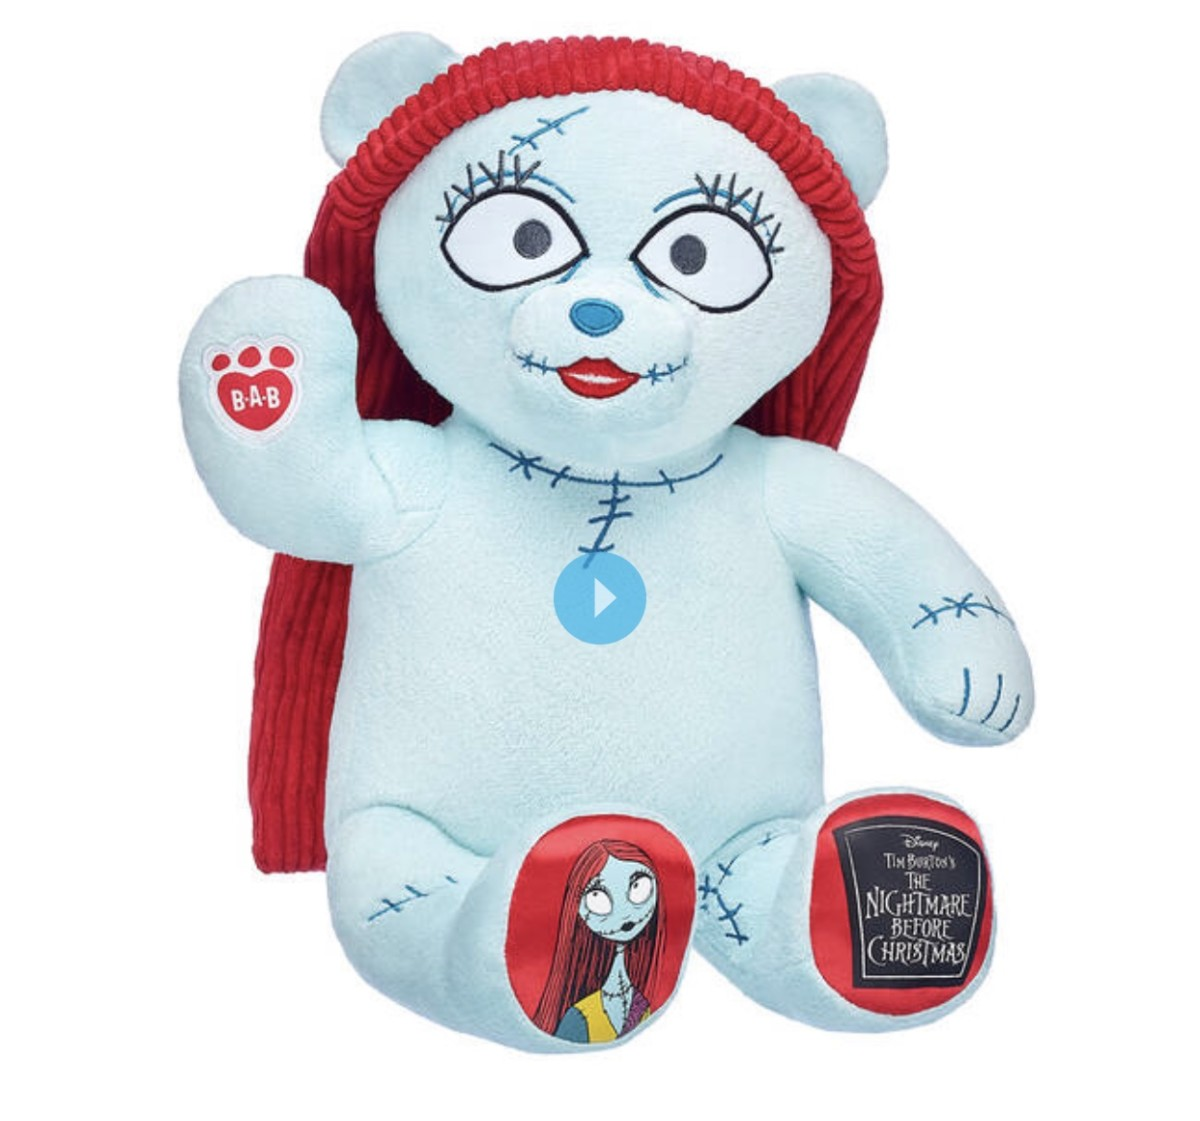 New Jack and Sally Bears from Build A Bear Workshop 2